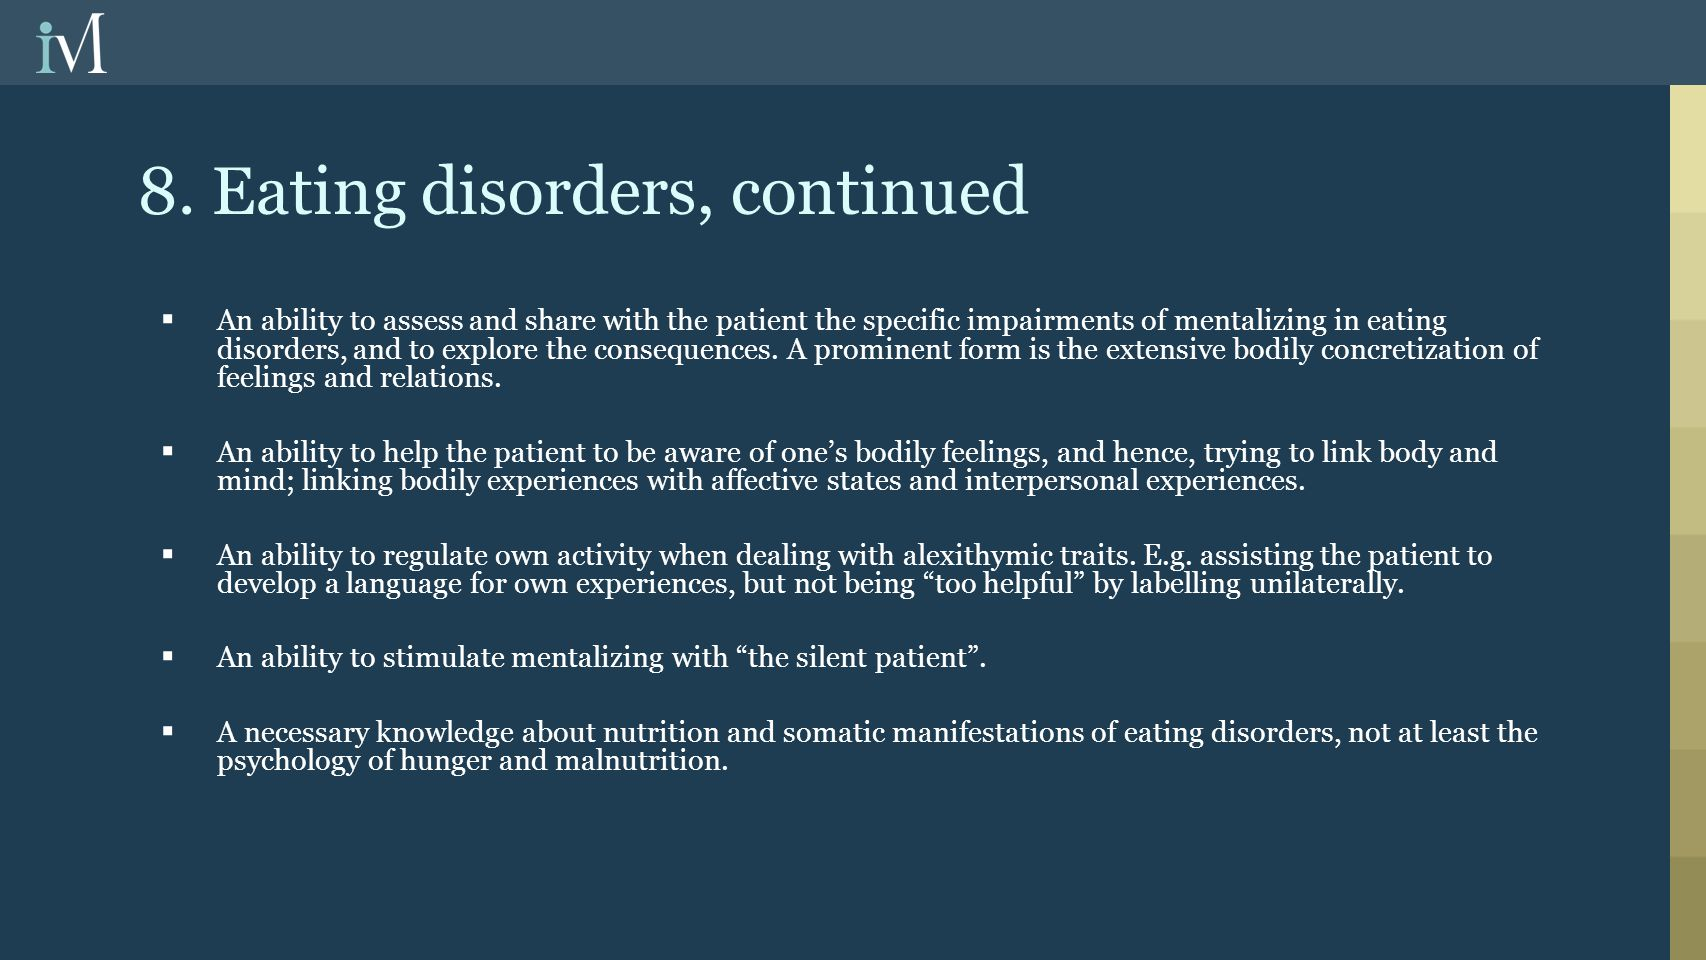 8. Eating disorders, continued